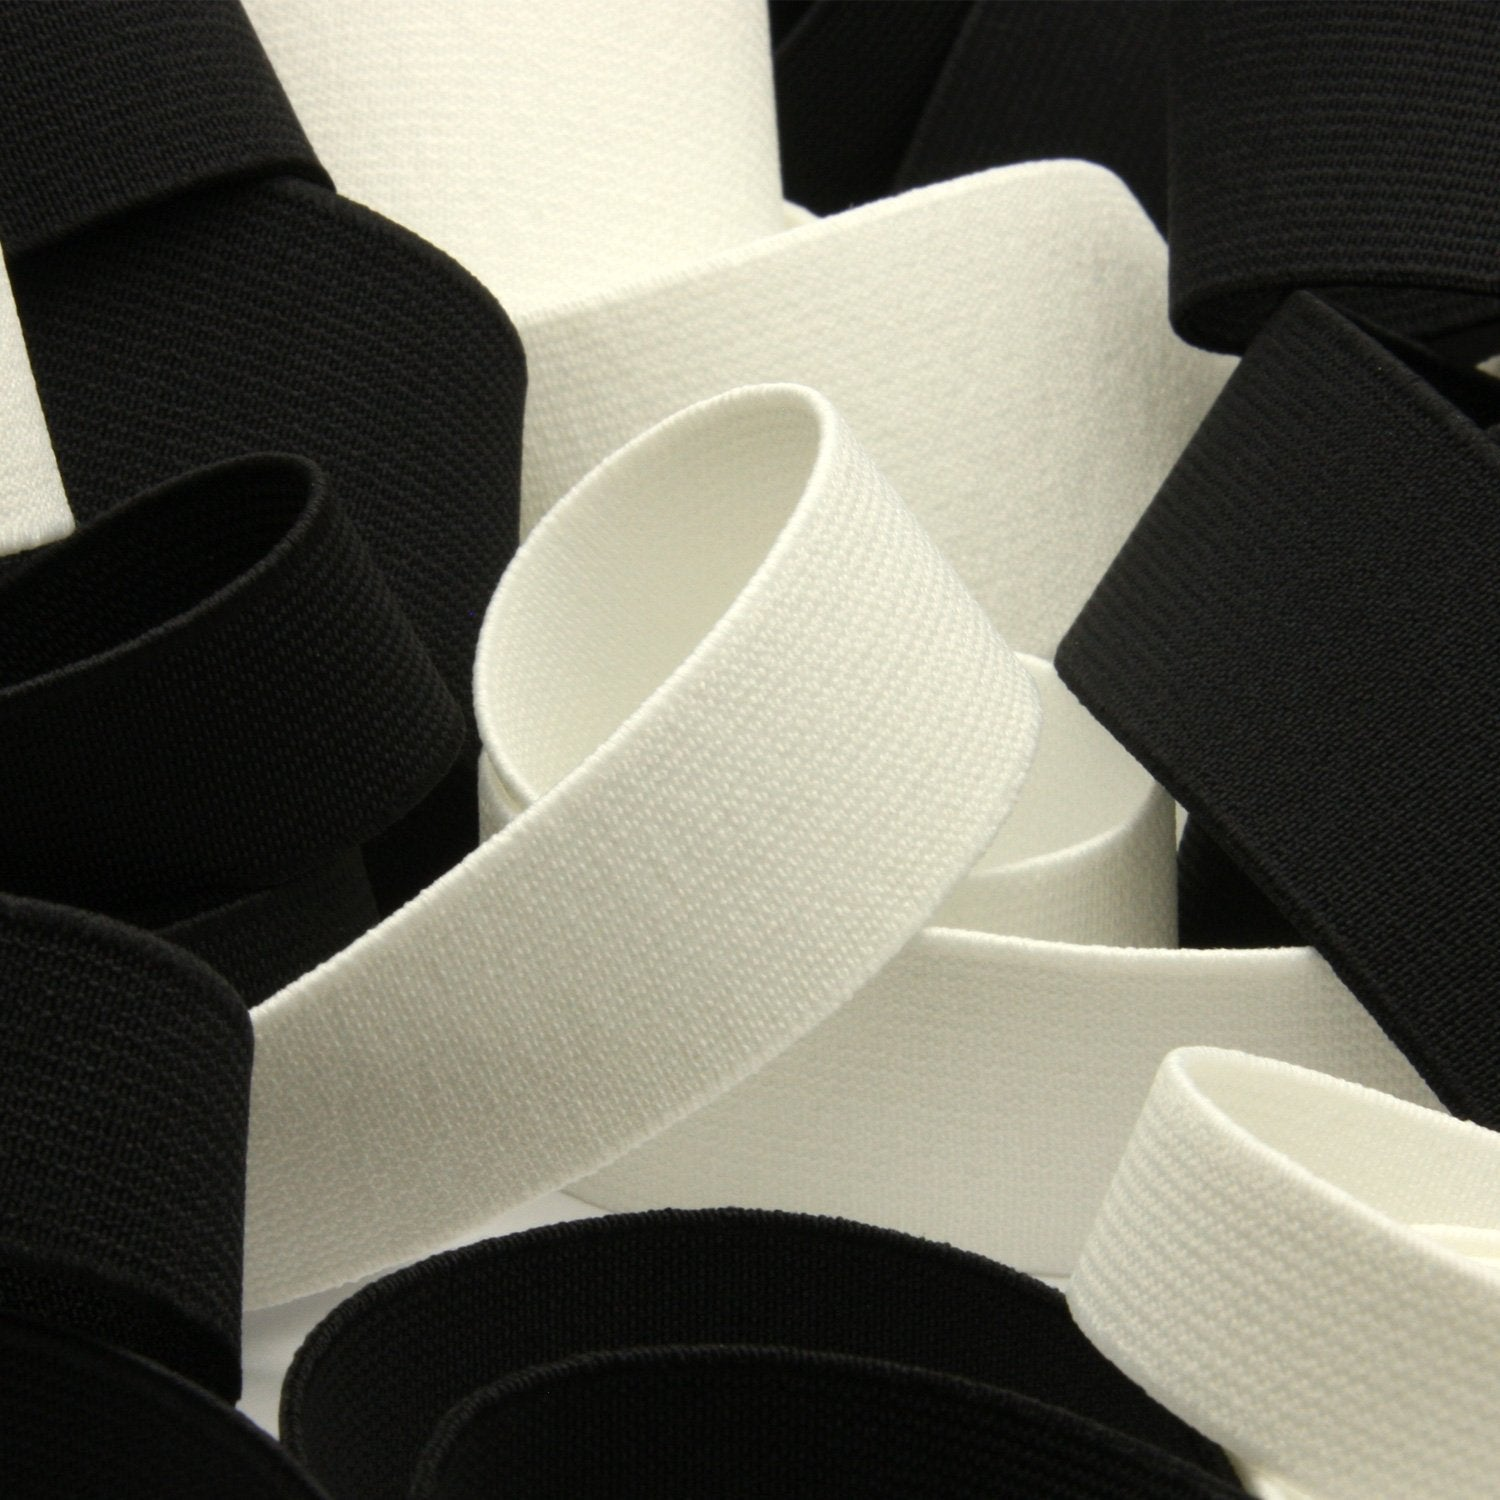 FUJIYAMA RIBBON [Wholesale] Hard Type Inside Belt 35mm 30 Meters Roll Off White